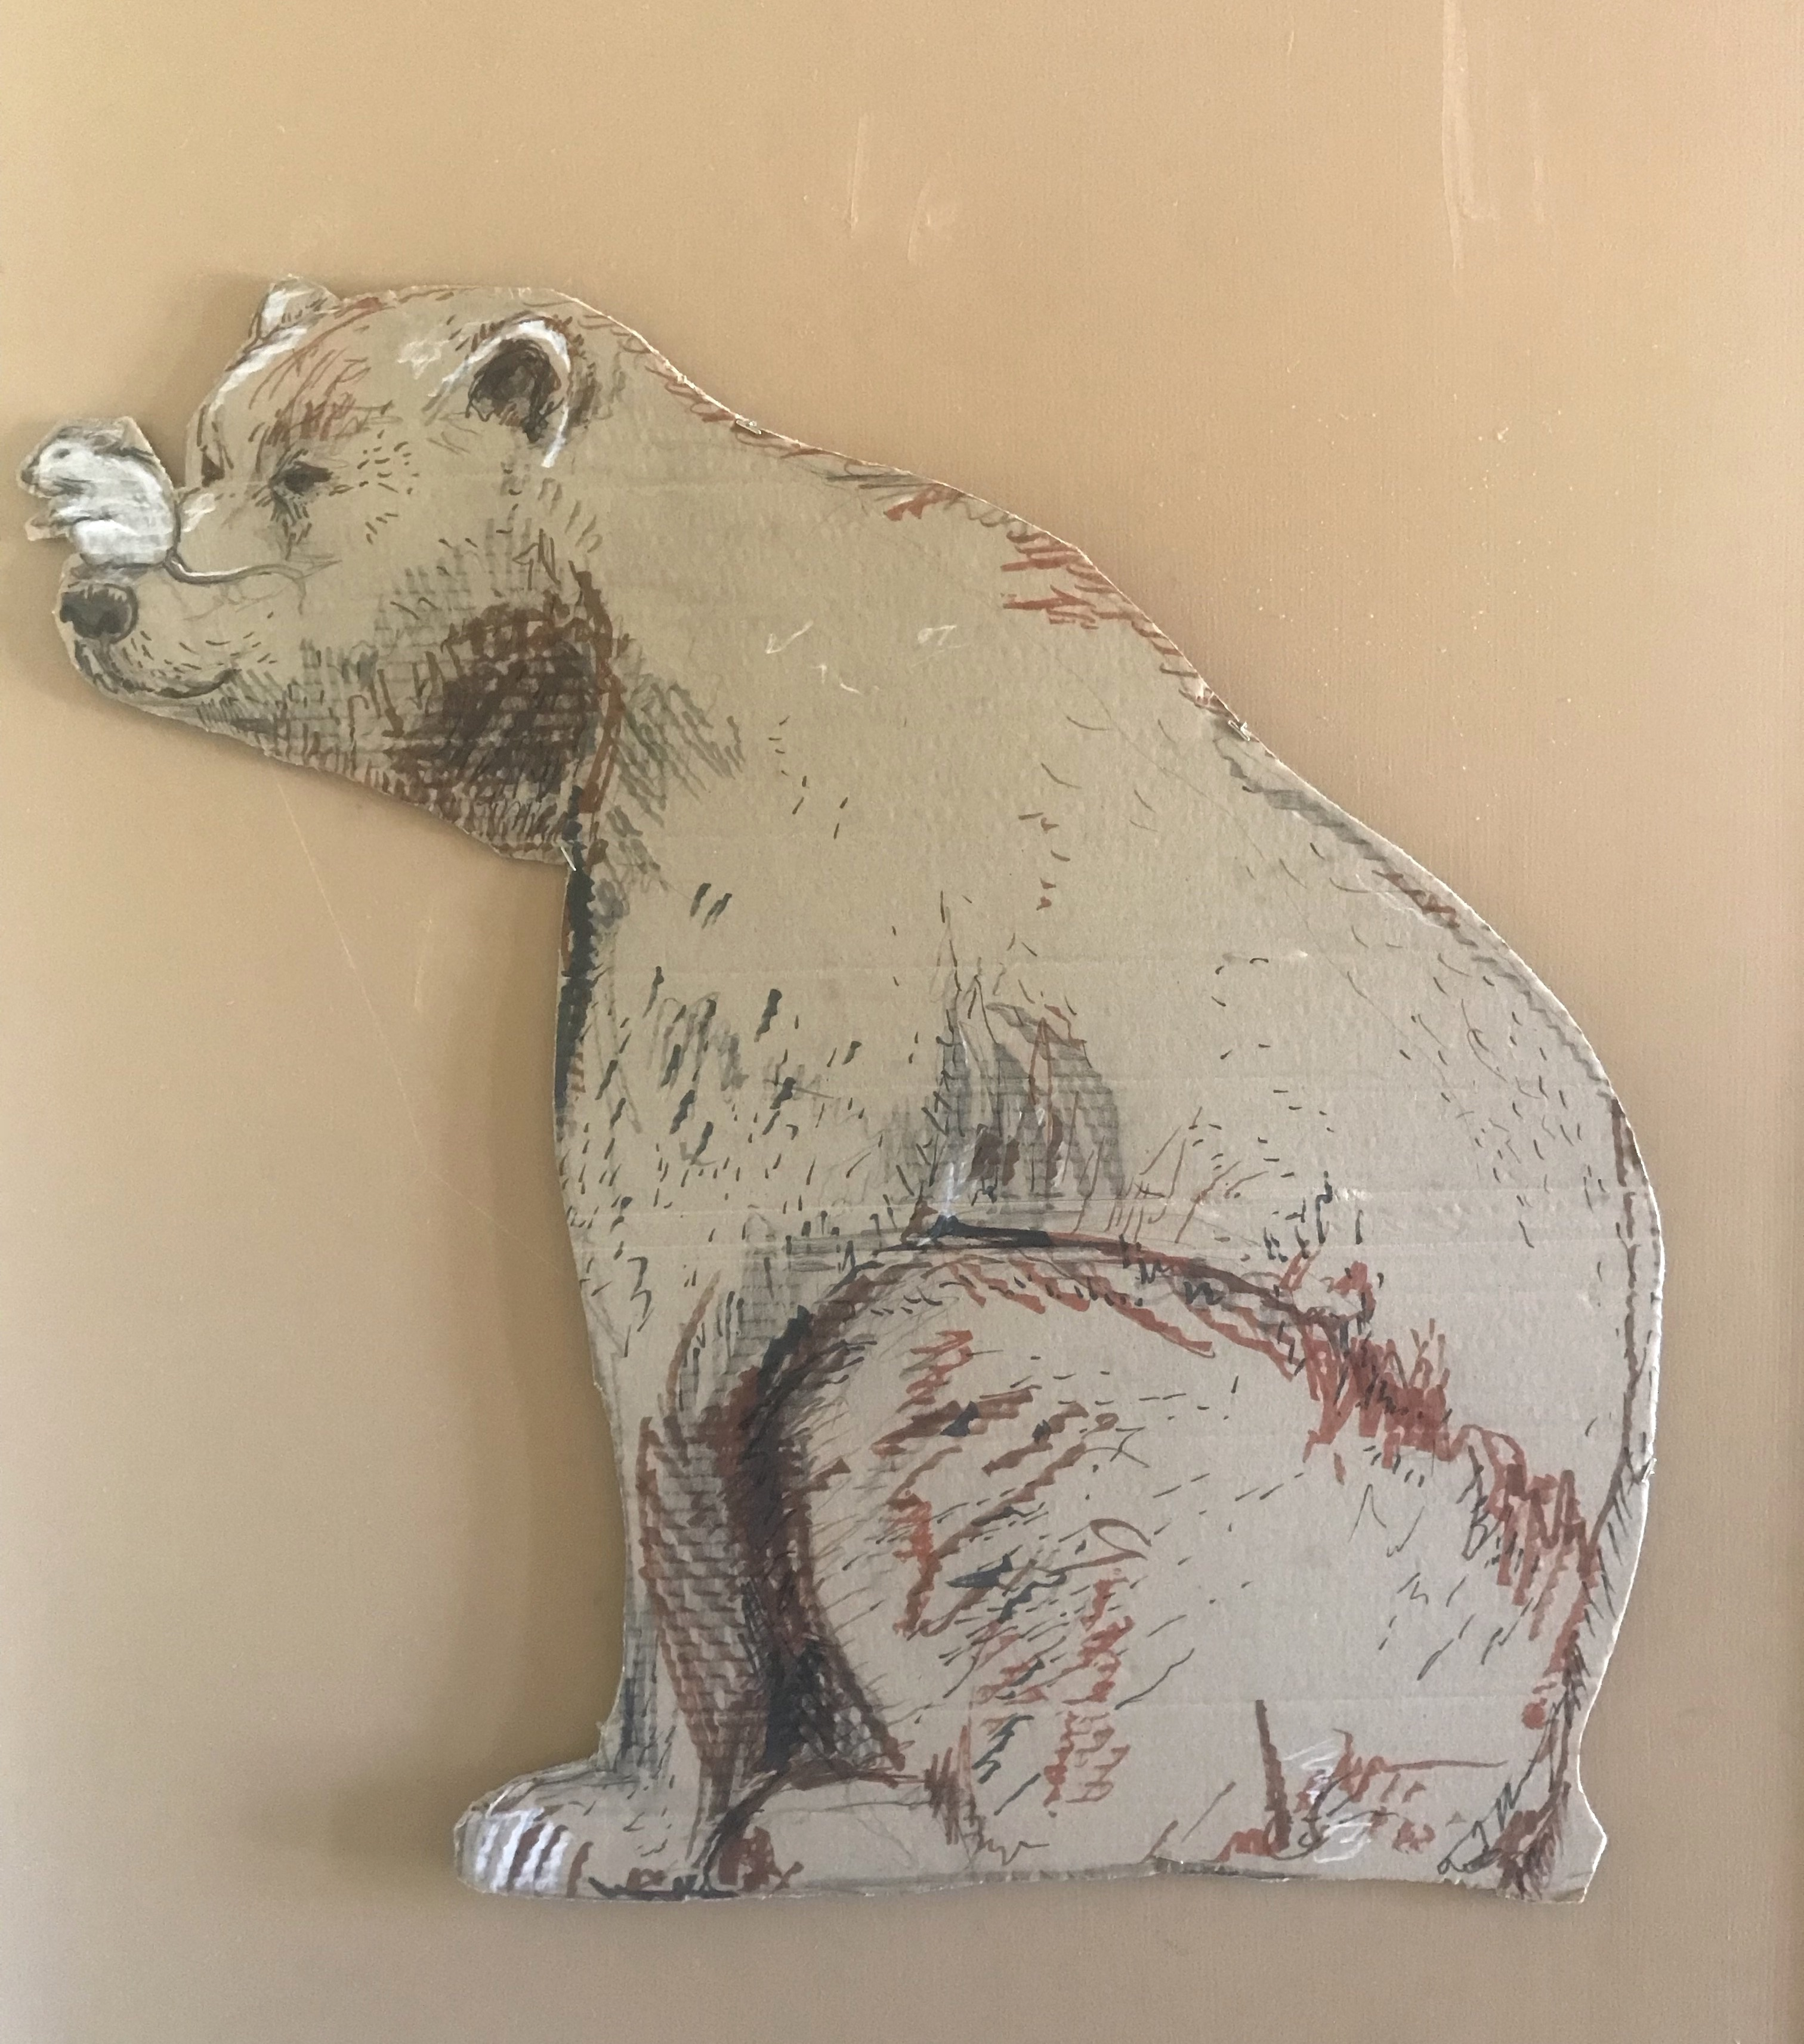 bear with mouse on nose, cut out and drawn on cardboard, hanging on wall